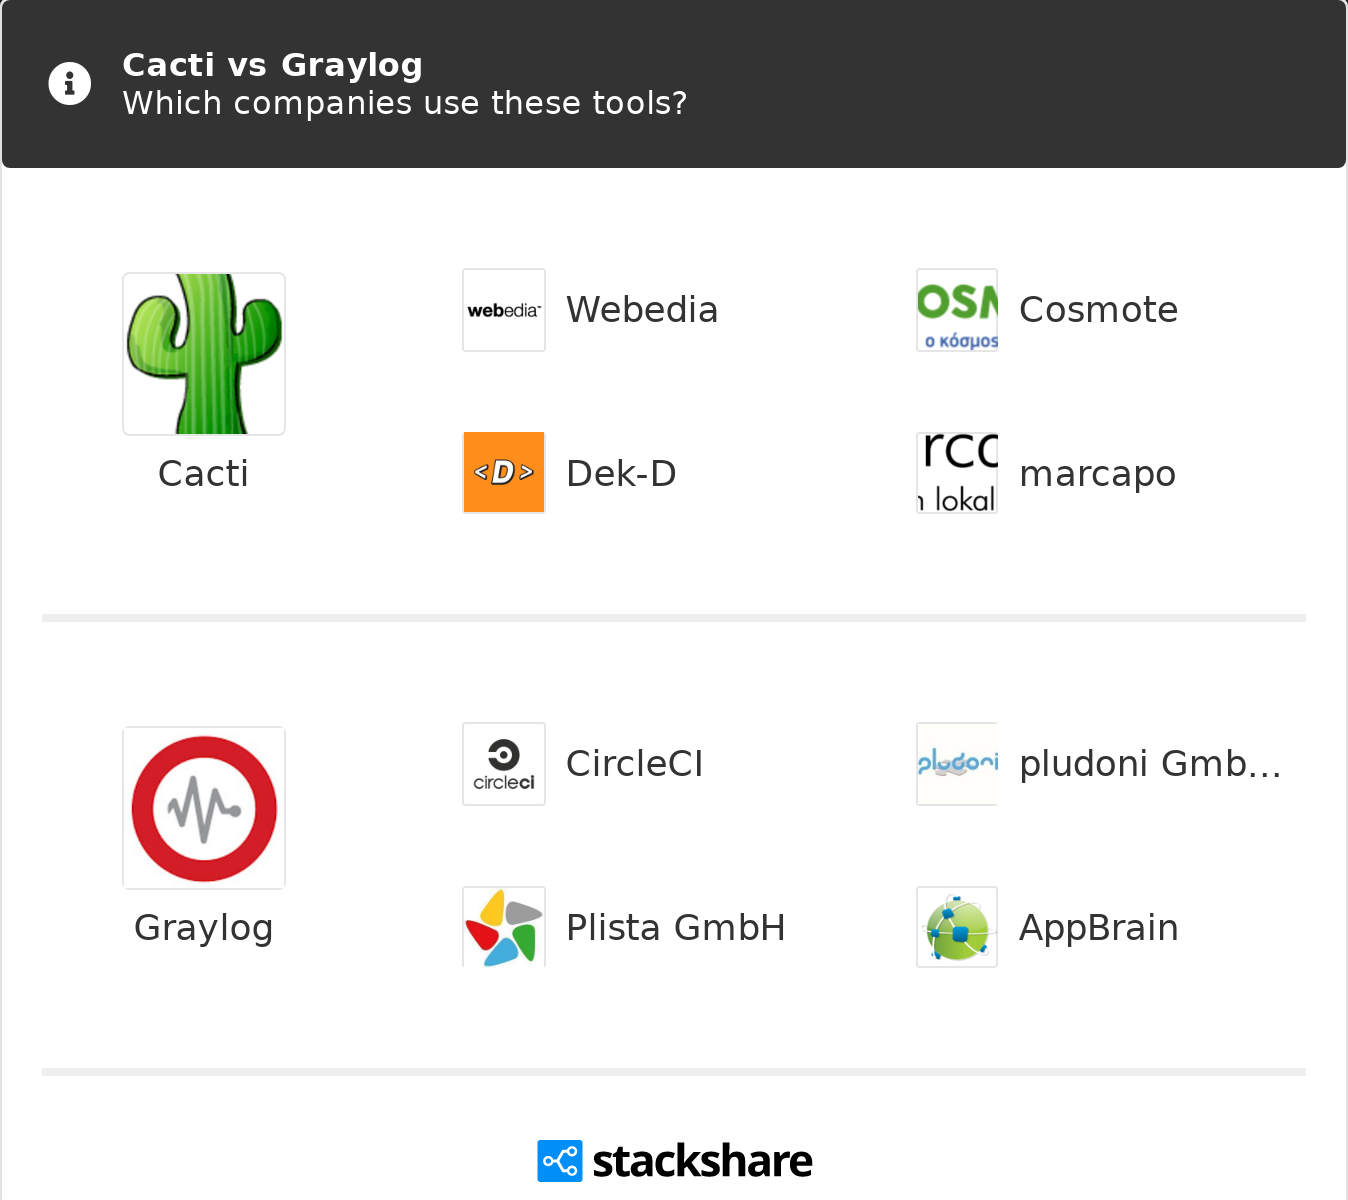 Cacti vs Graylog | What are the differences?